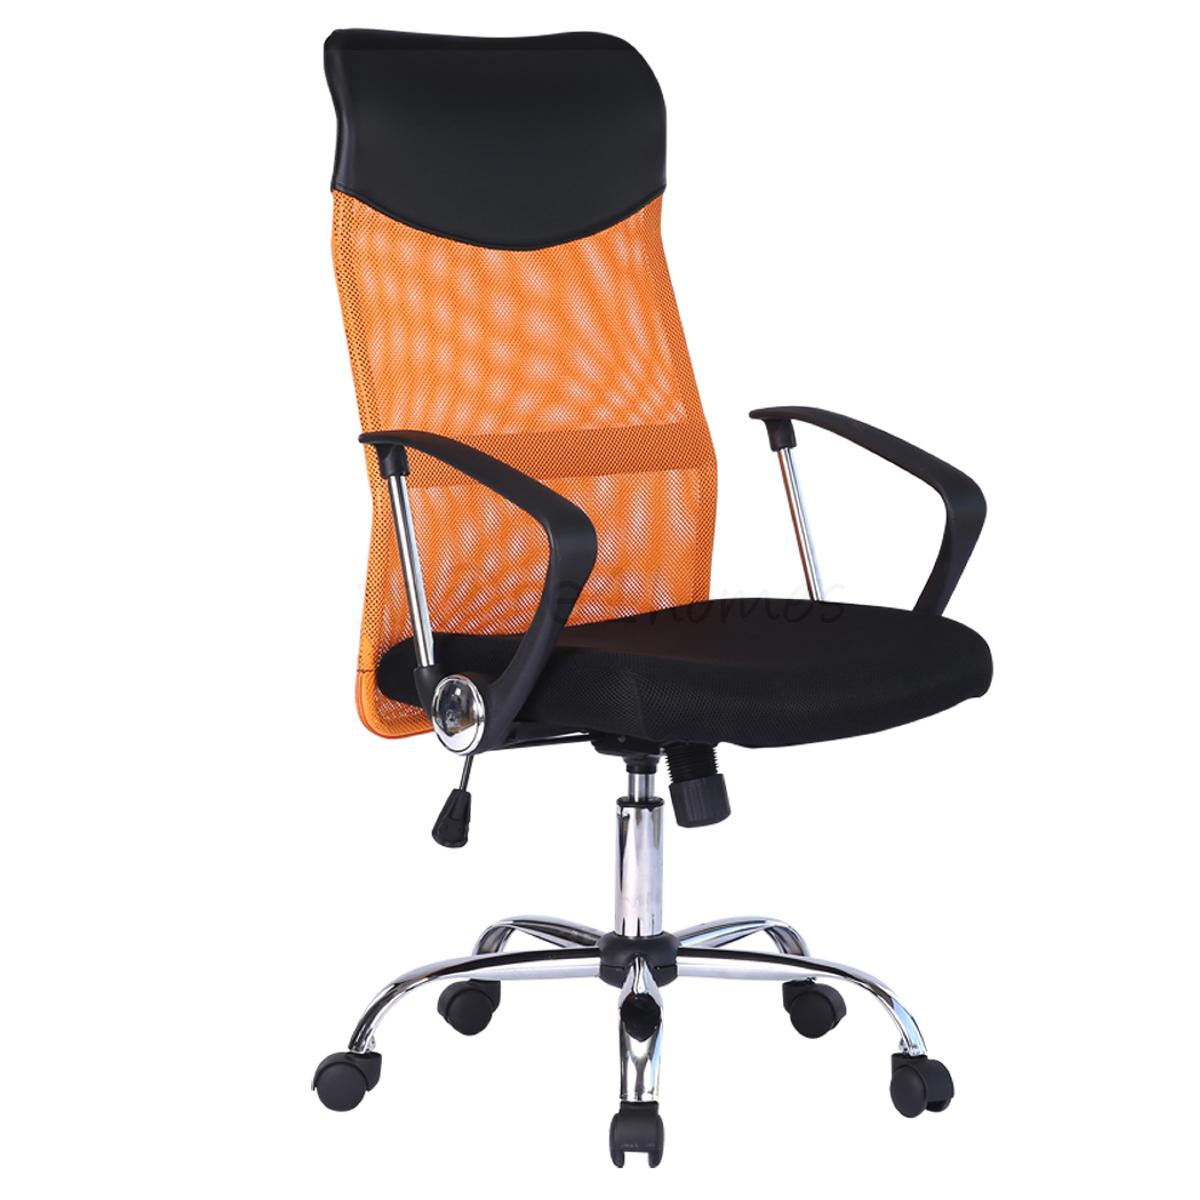 add on headrest for office chair folding tent saturn mesh adustable recline